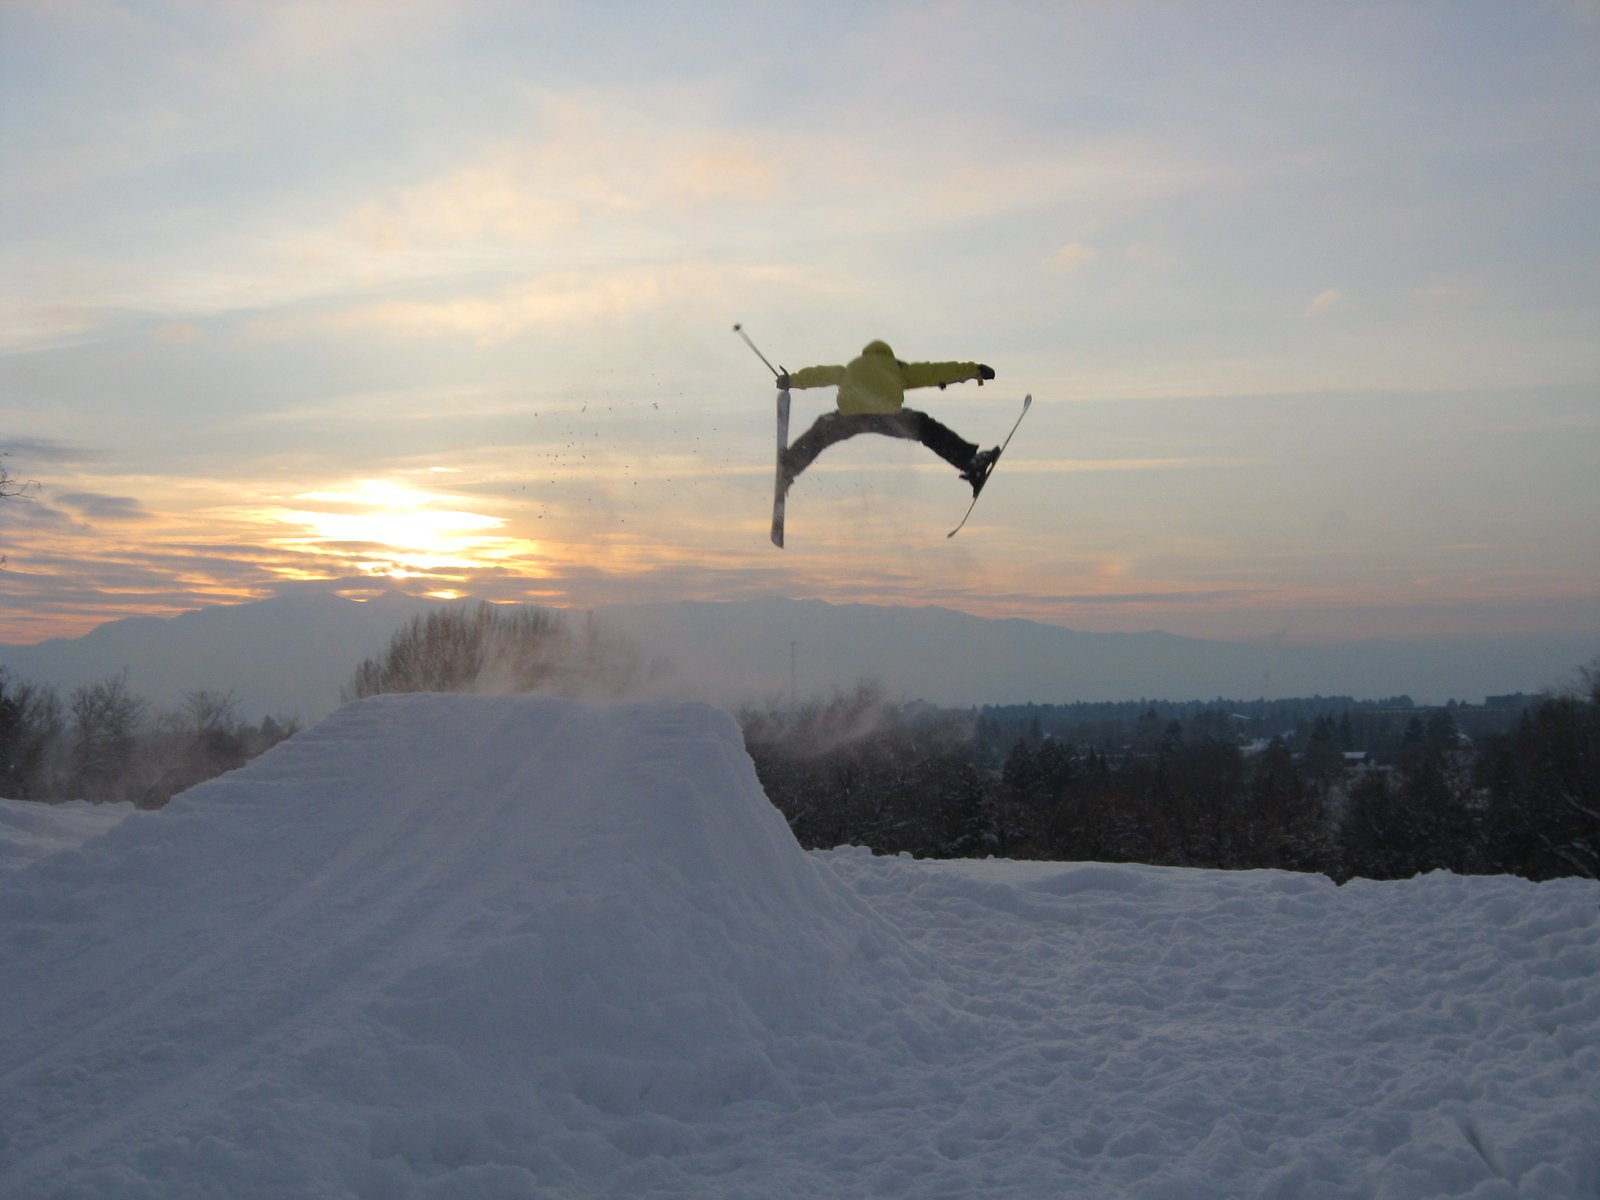 Another classic jump made from snow